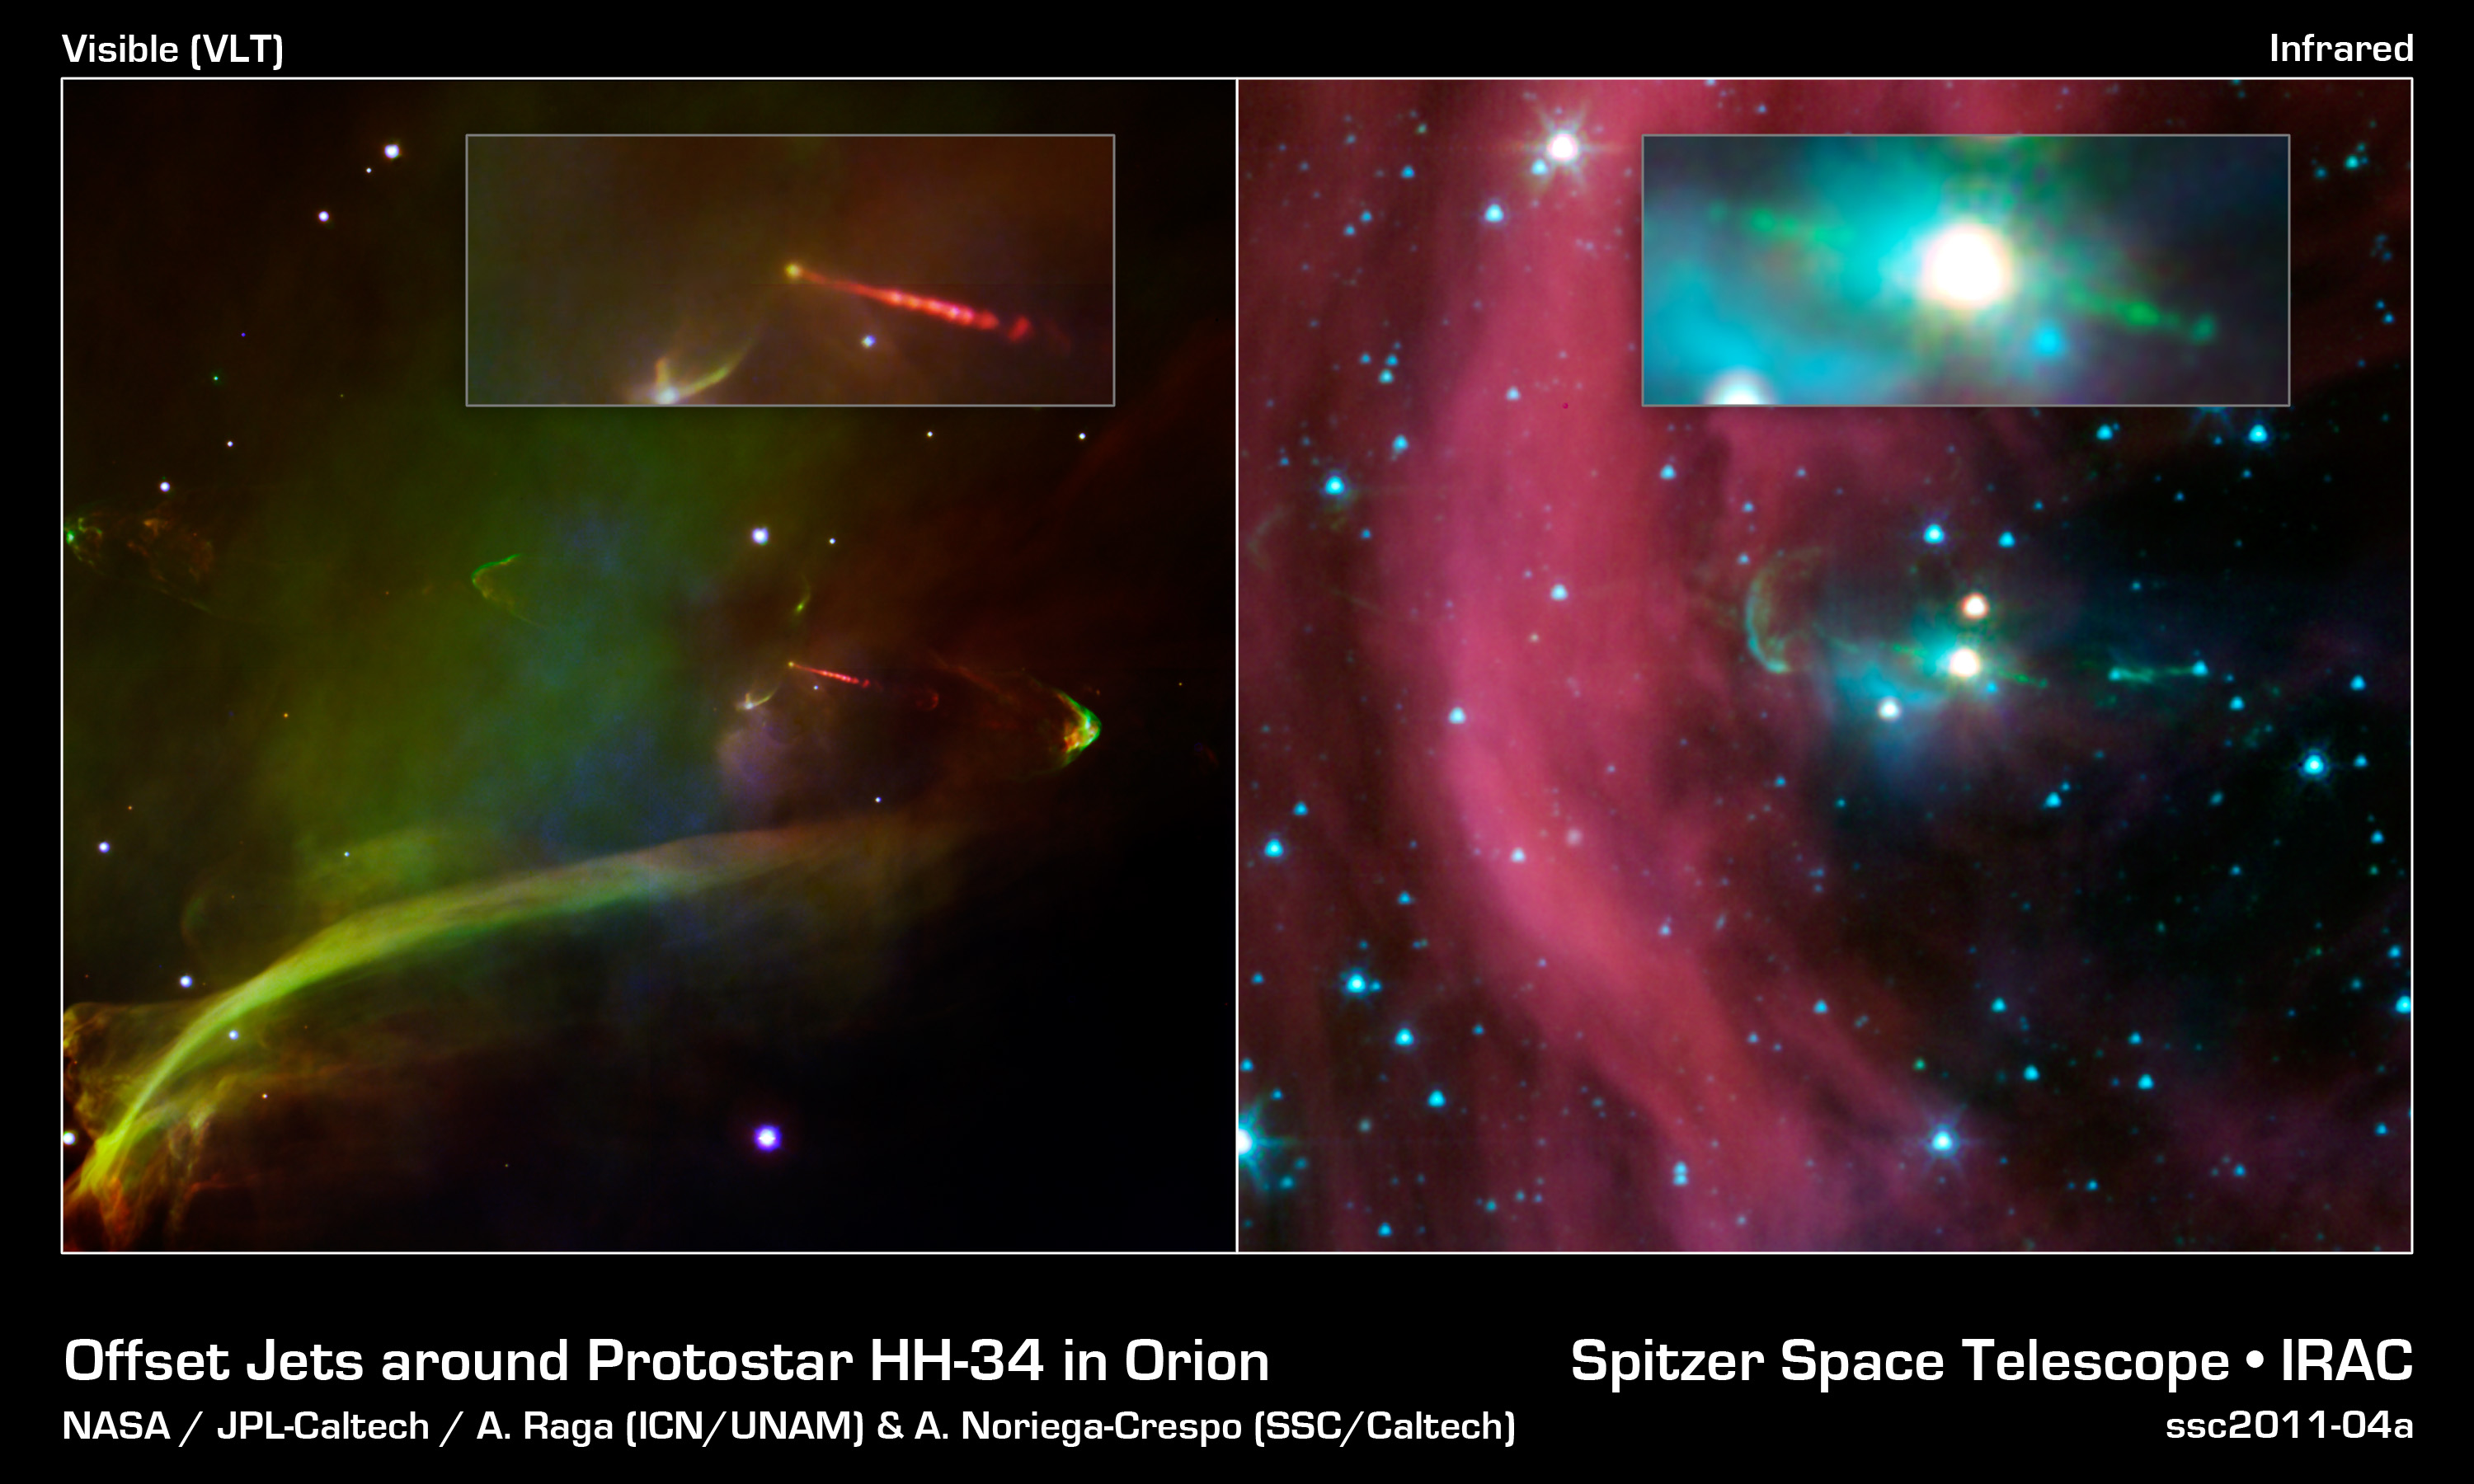 Offset_Jets_around_Protostar_HH-34_in_Or